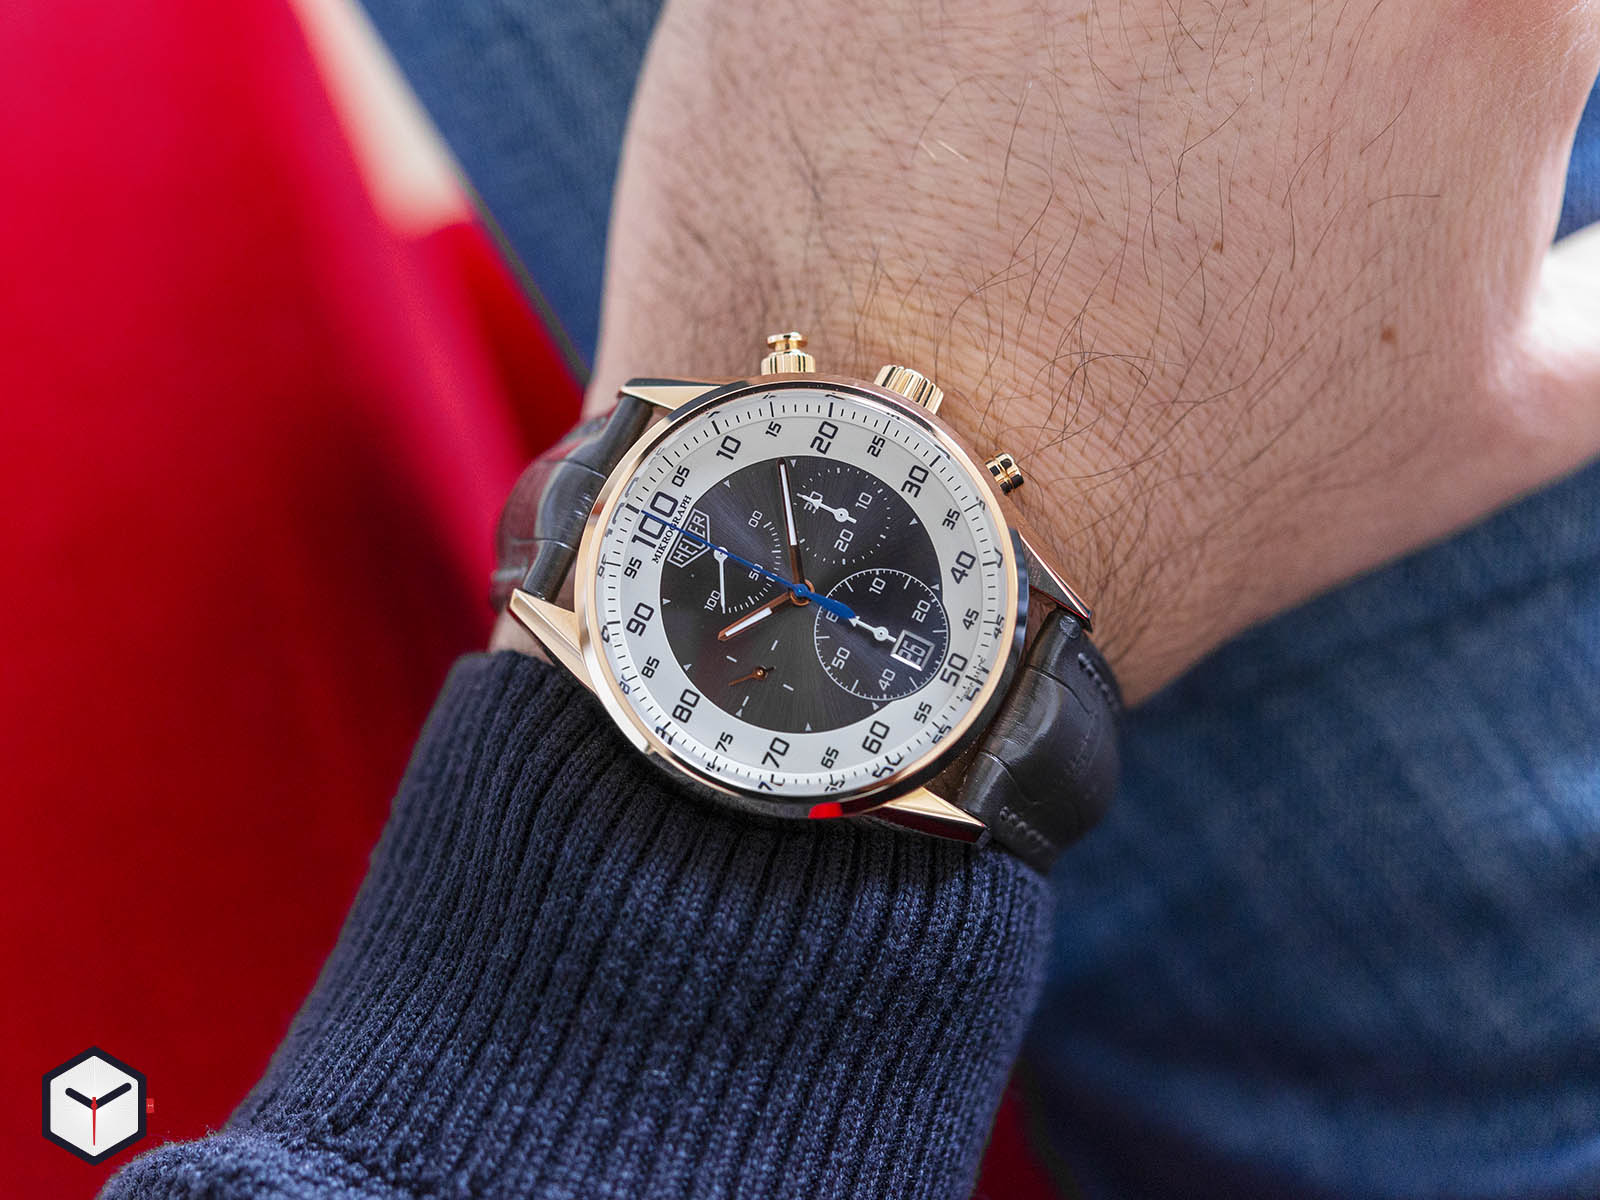 tag-heuer-carrera-mikrograph-1-100th-of-a-second-chronograph-8.jpg